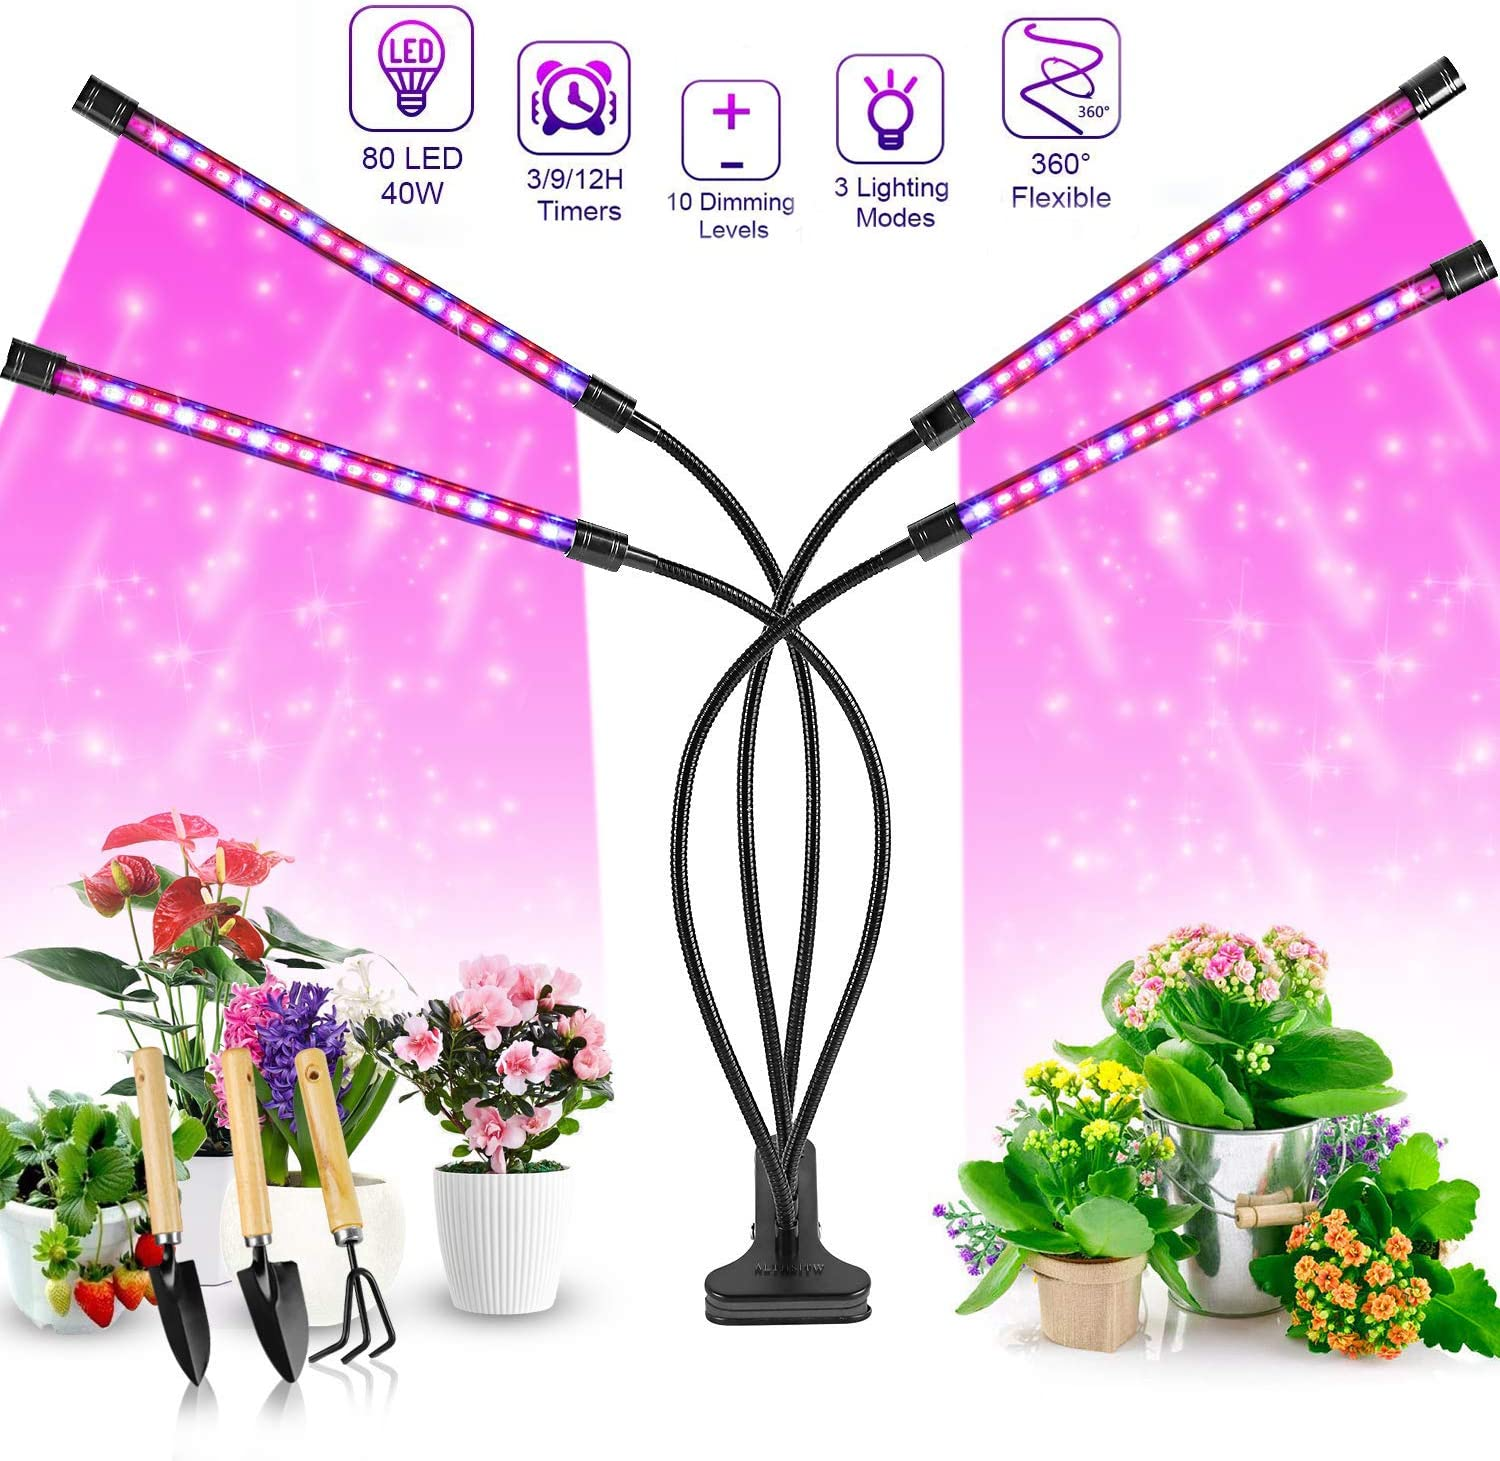 Upgraded Grow Light, 40W Four Heads Timing Plant Grow Lights for Indoor Plants, 80 LED 9 Dimmable Levels Lamp Bulbs with Red Blue Full Spectrum, Adjustable Gooseneck, 3 9 12H Timer, 3 Switch Modes